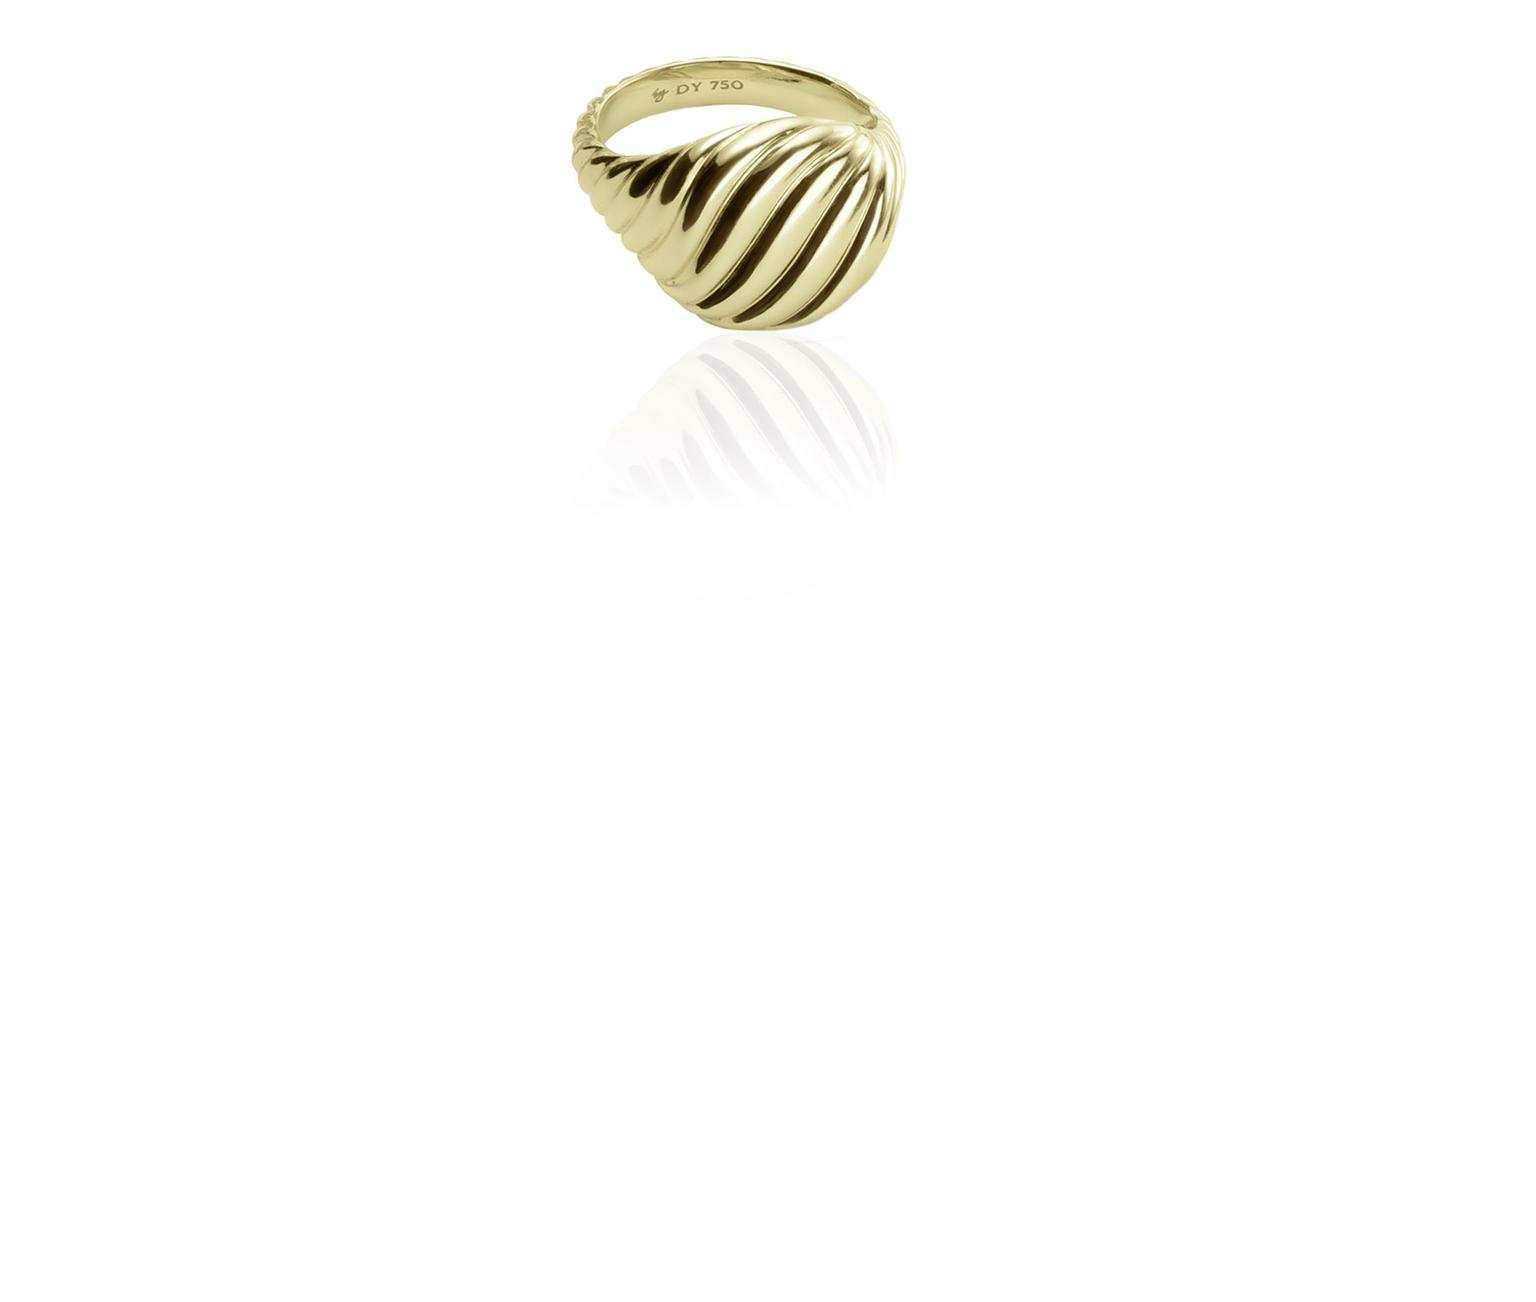 David-Yurman-Pinky-Ring-zoom